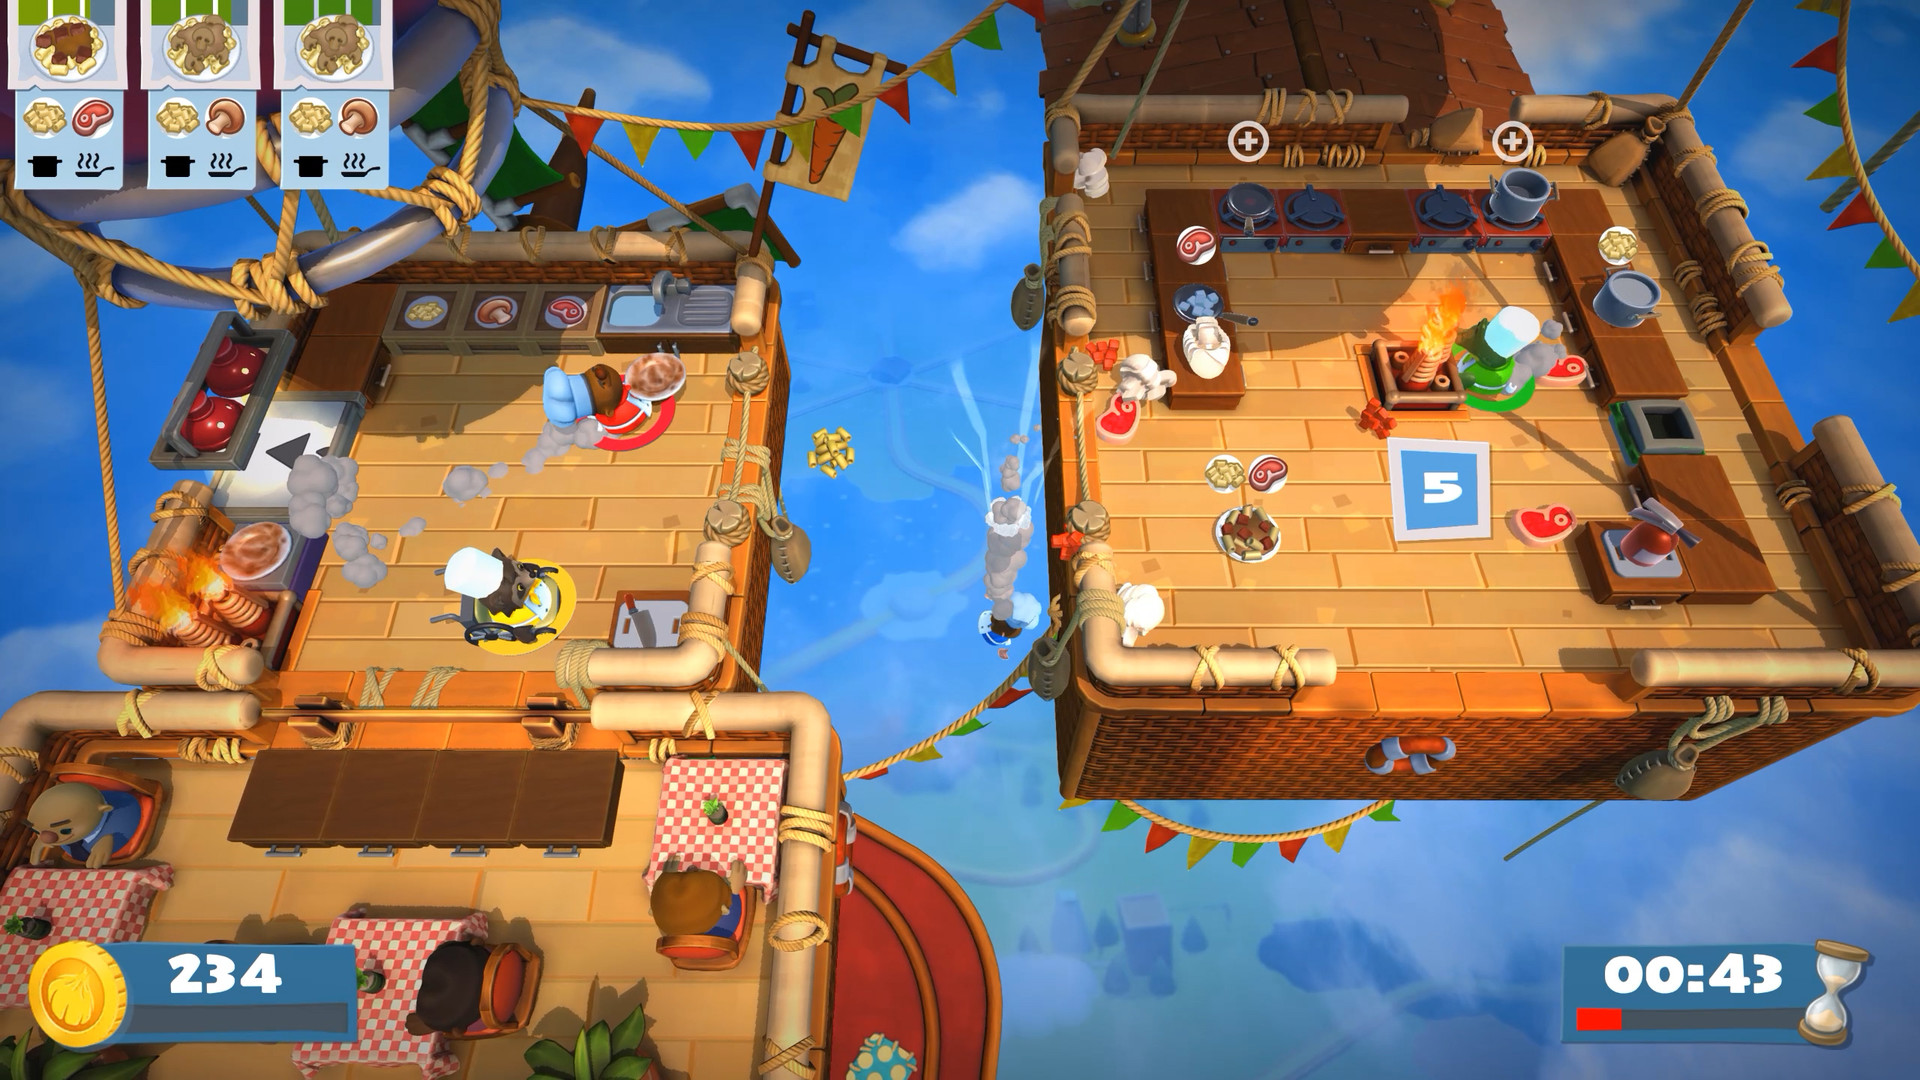 Overcooked! 2 on Steam